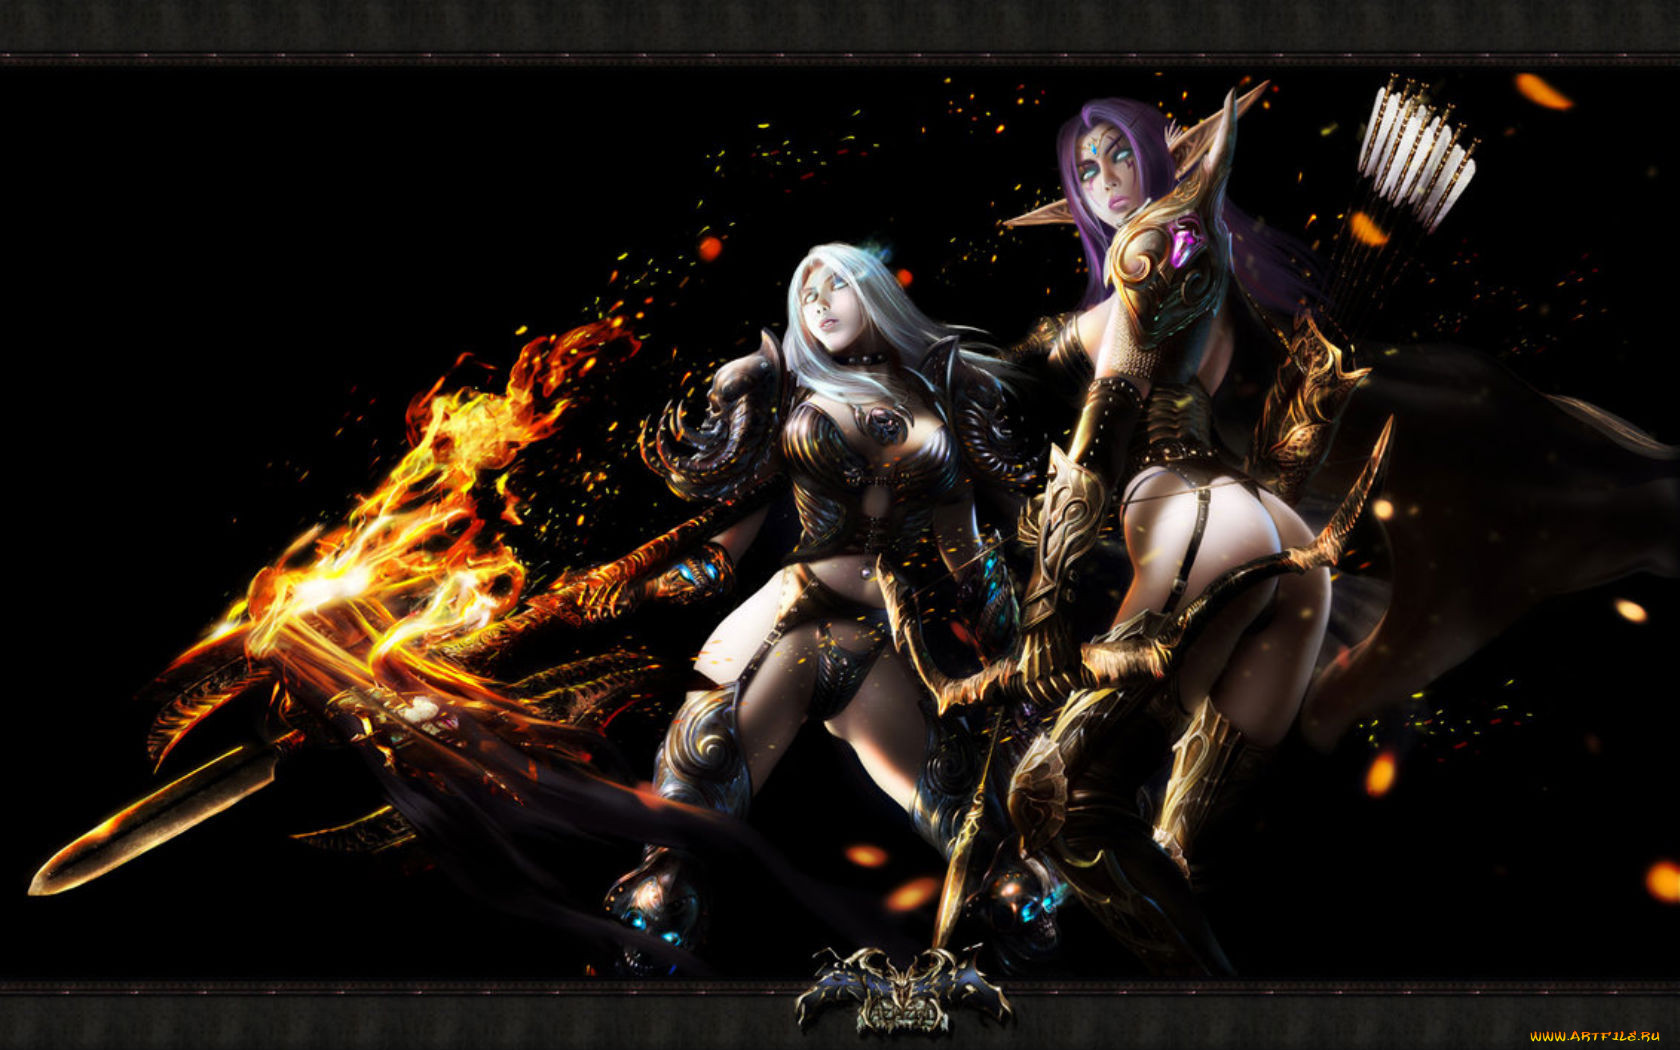 Sexy World of Warcraft wallpapers sexual toons